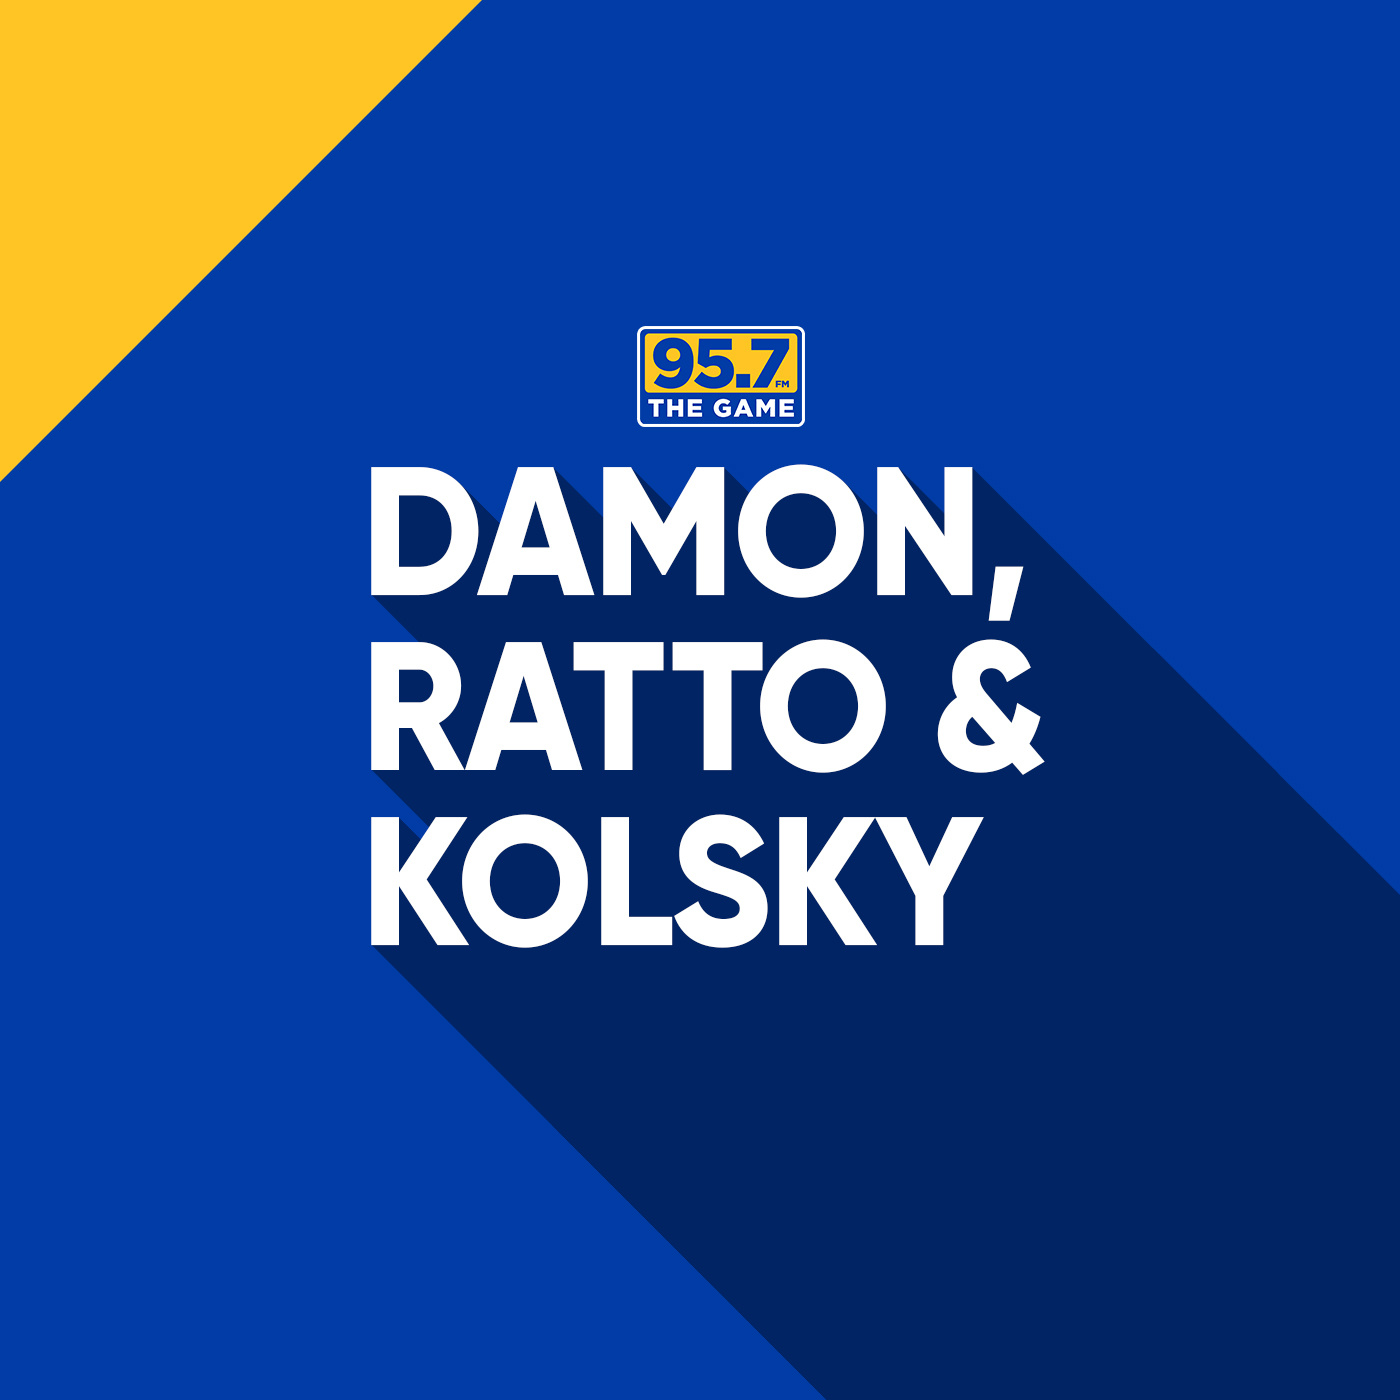 The Damon Bruce Show with Ratto & Kolsky